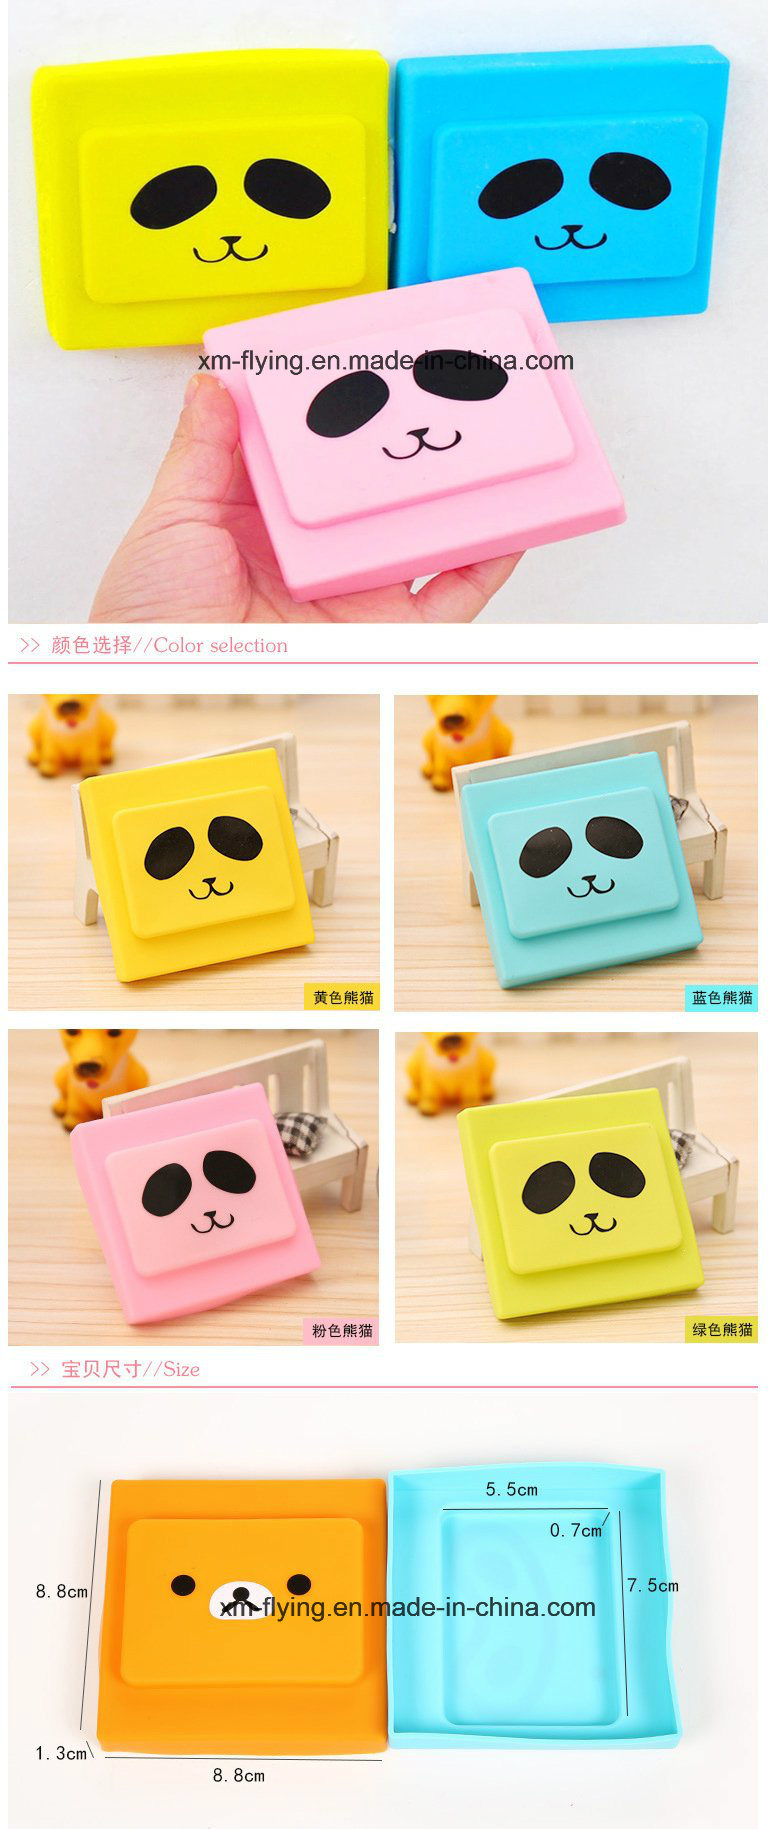 Dustproof and Anti-Electric Silicone Protective Wall Plates Switch Covers, Light Switch Covers to Prevent Electric Shock